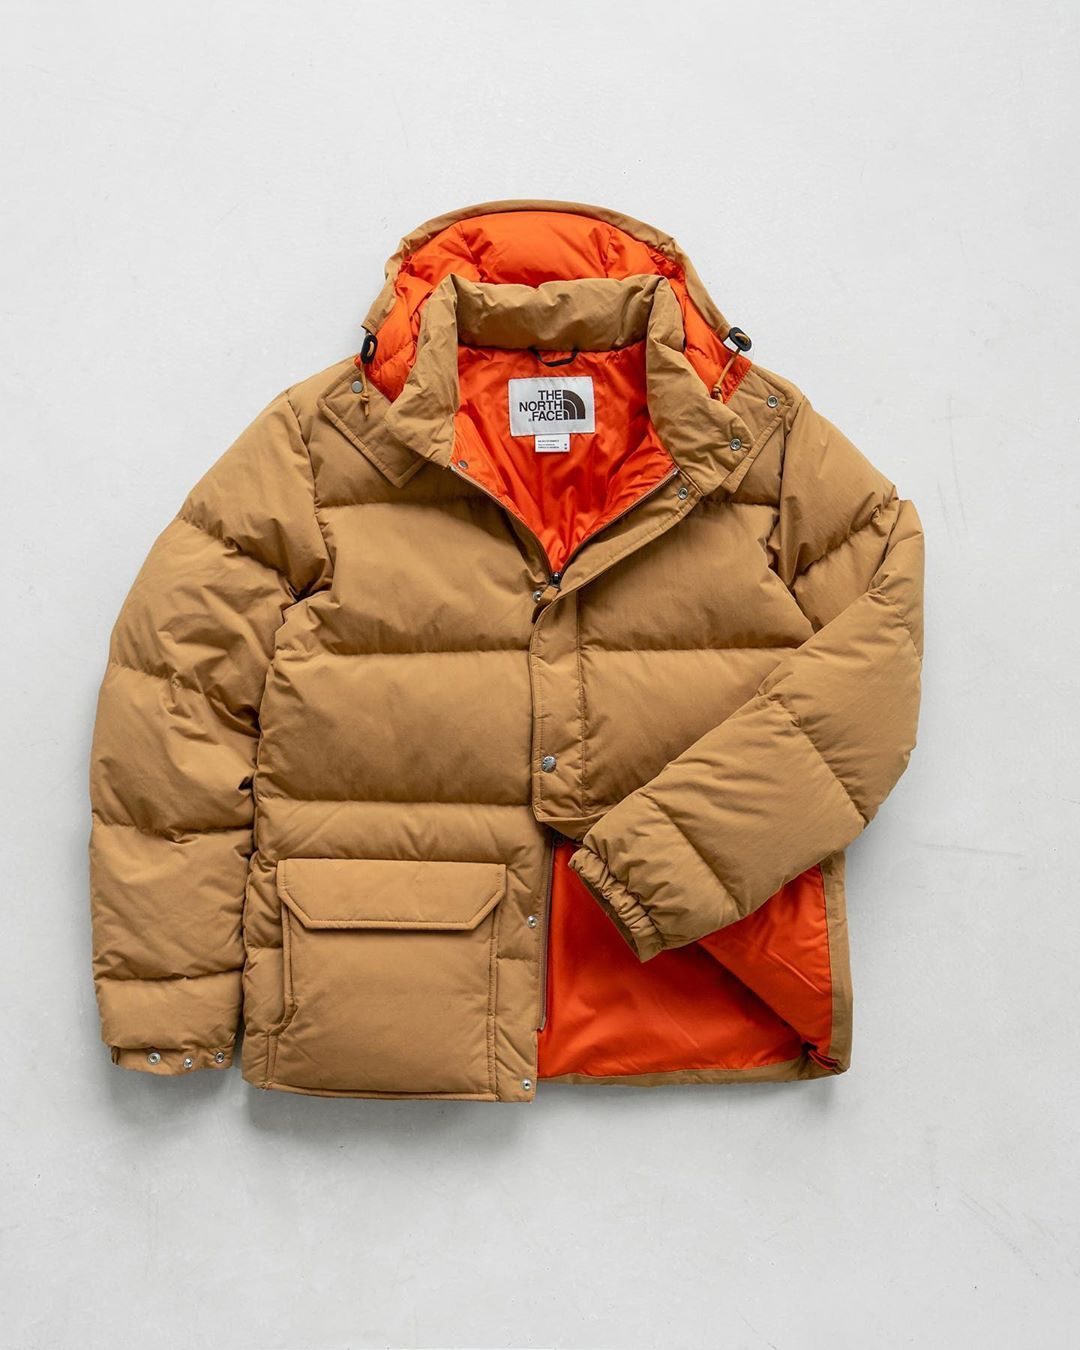 Outsiders Store On Instagram The North Face Have Outdone Themselves With This One As Near Enough To Streetwear Fashion Week Grey Fashion Streetwear Fashion [ 1350 x 1080 Pixel ]